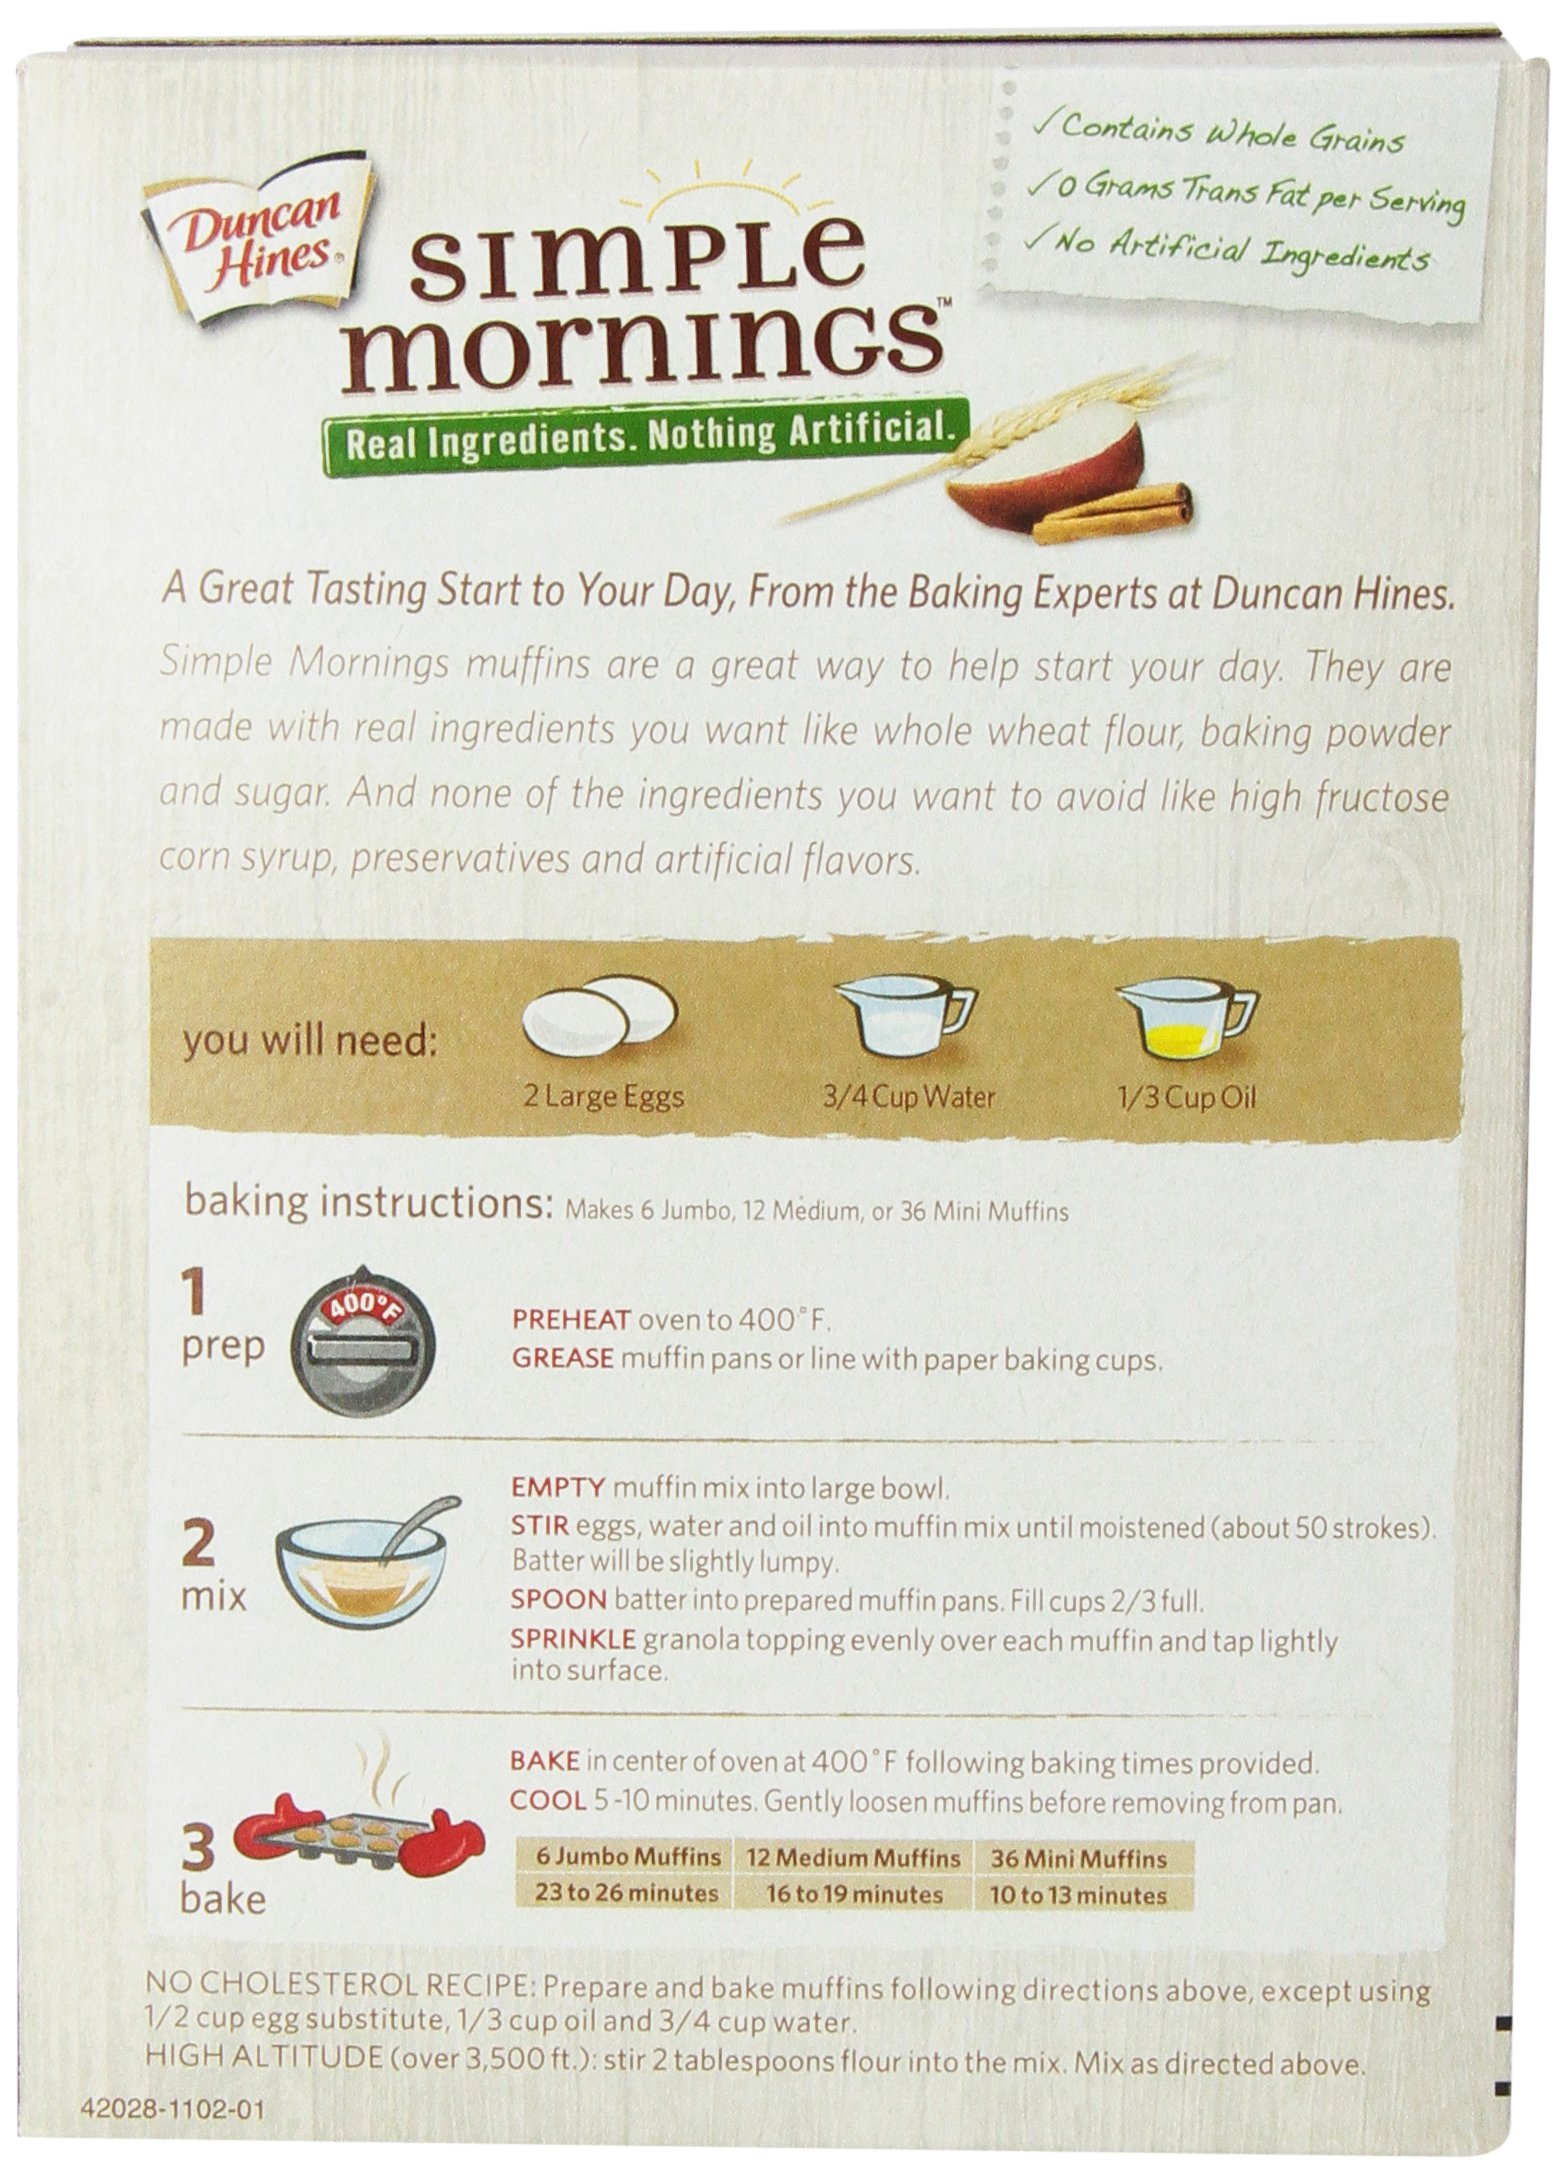 Duncan Hines Simple Mornings Oatmeal Muffin Mix, Apple Cinnamon, 16.1-Ounce (Pack of 12) by Duncan Hines (Image #5)